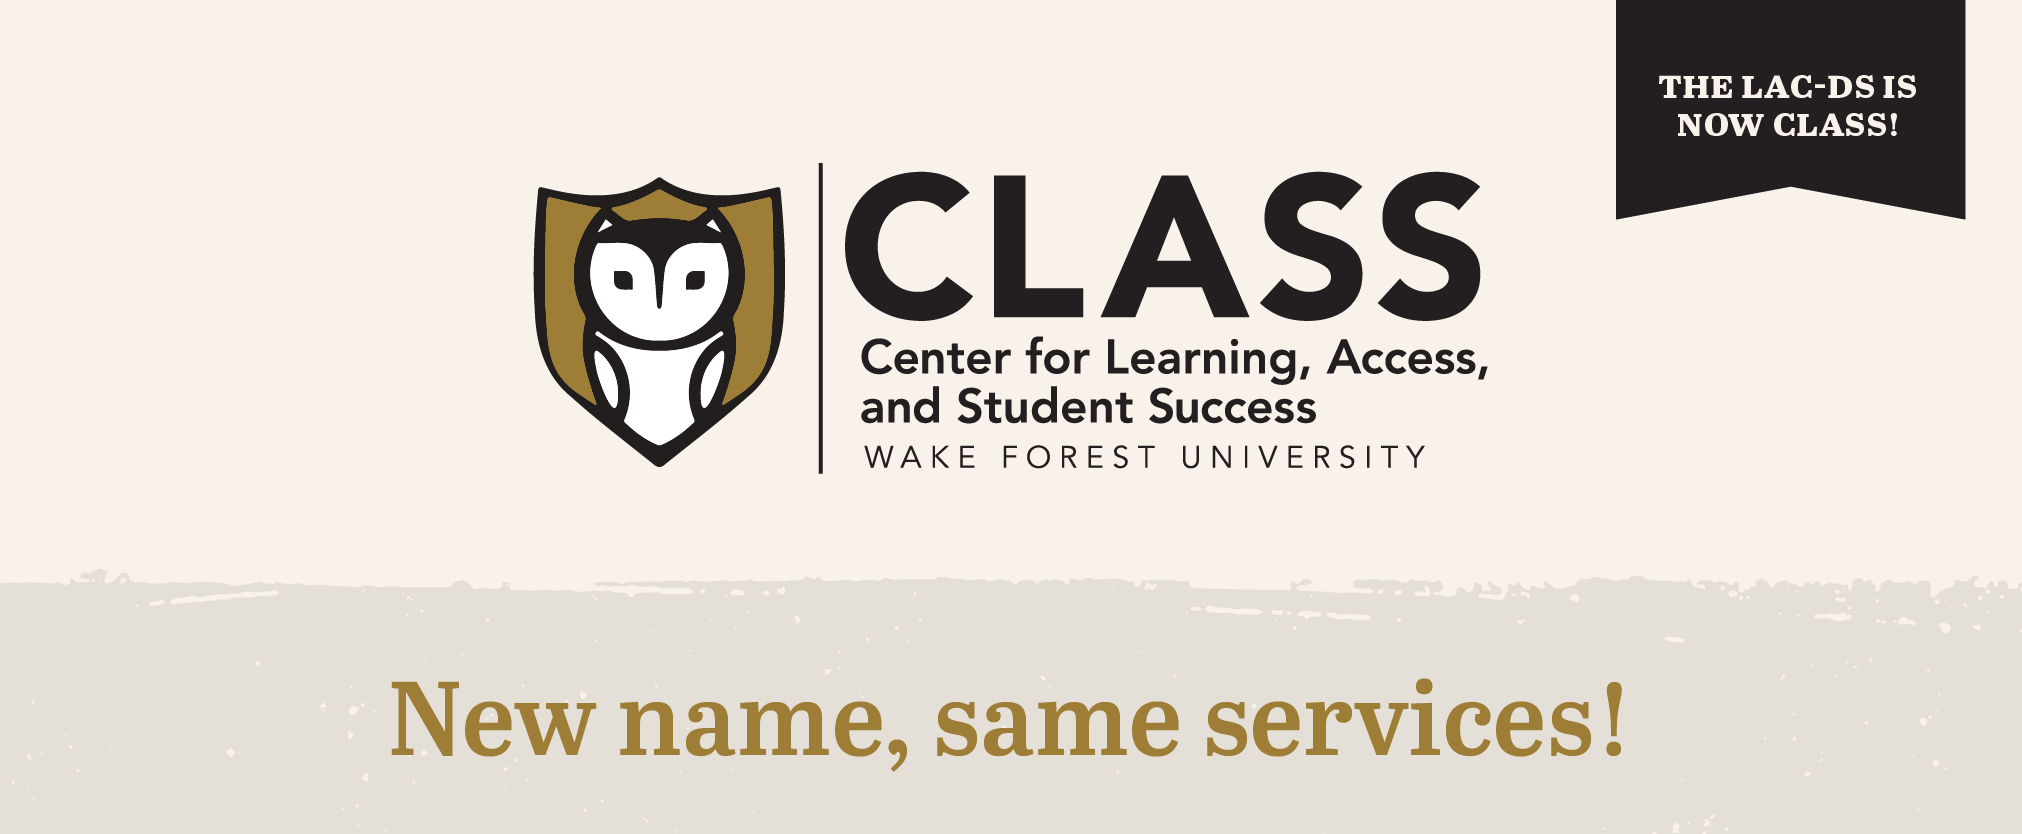 Banner announcing new LAC-DS department name: CLASS, Center for Learning, Access, and Student Success